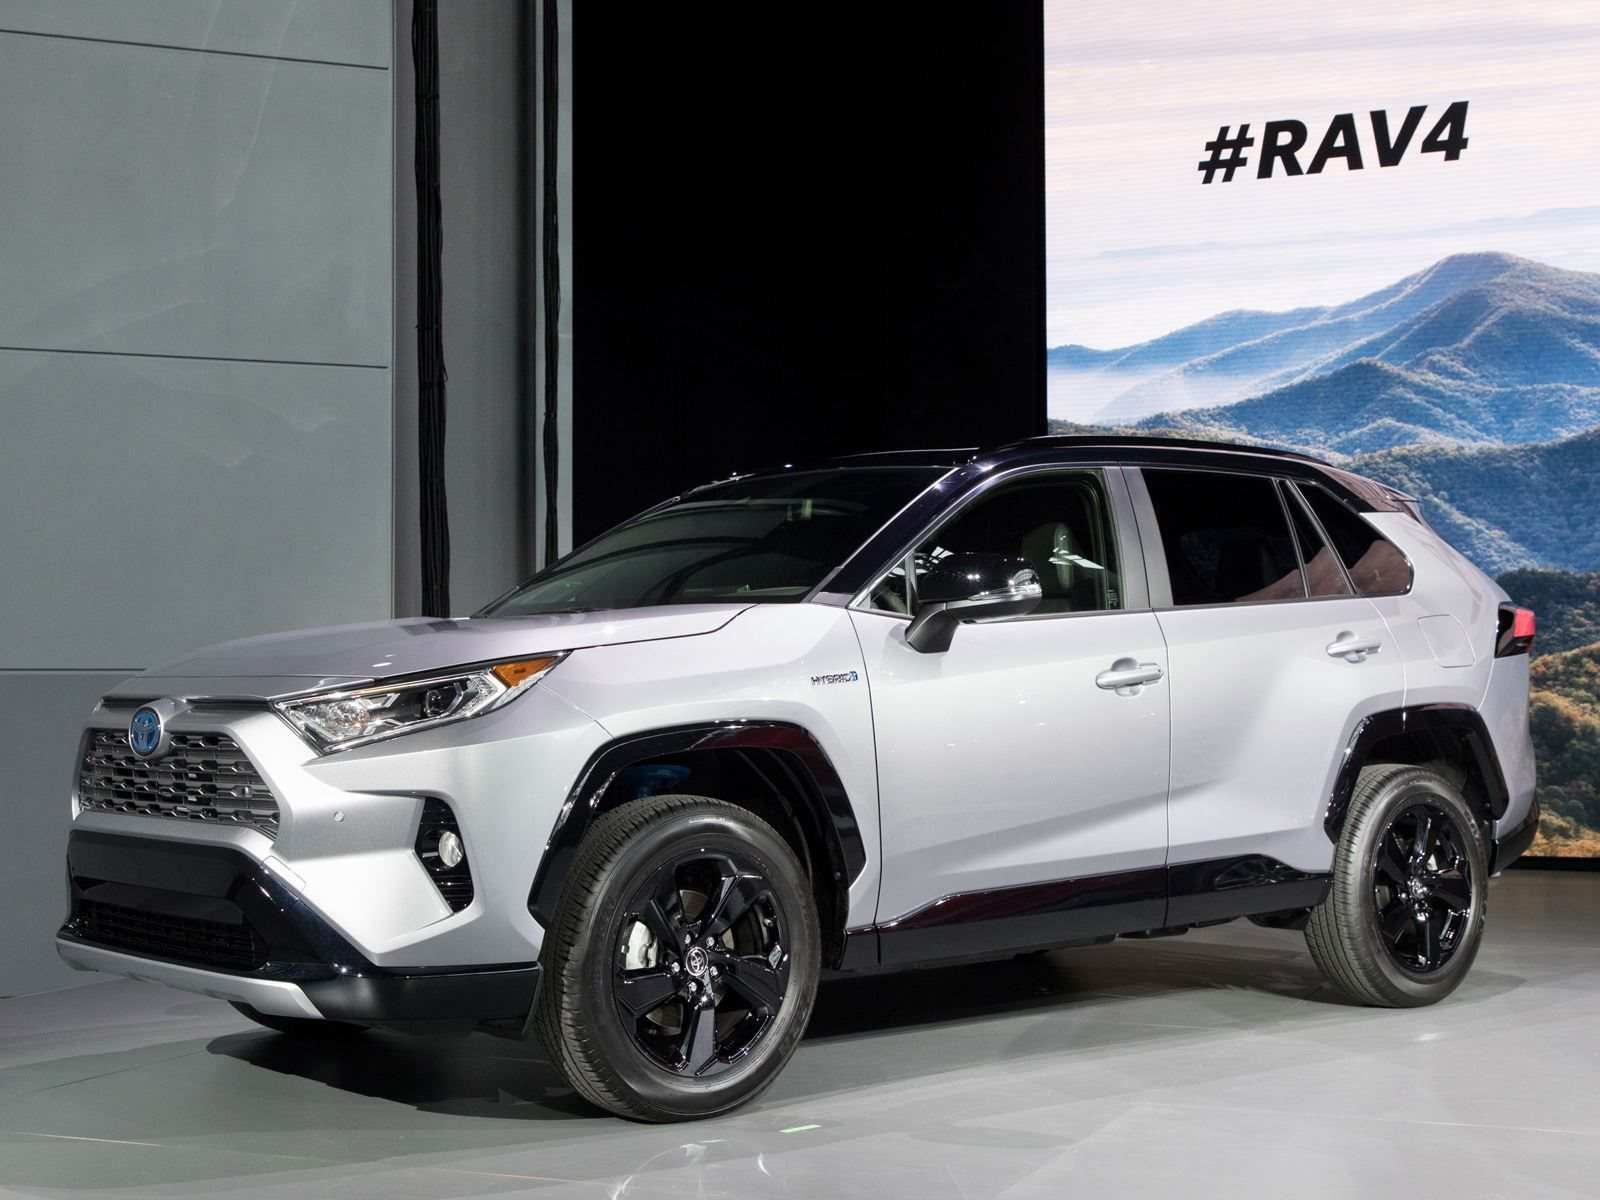 69 Best Review Toyota Rav4 2020 Uk Model for Toyota Rav4 2020 Uk